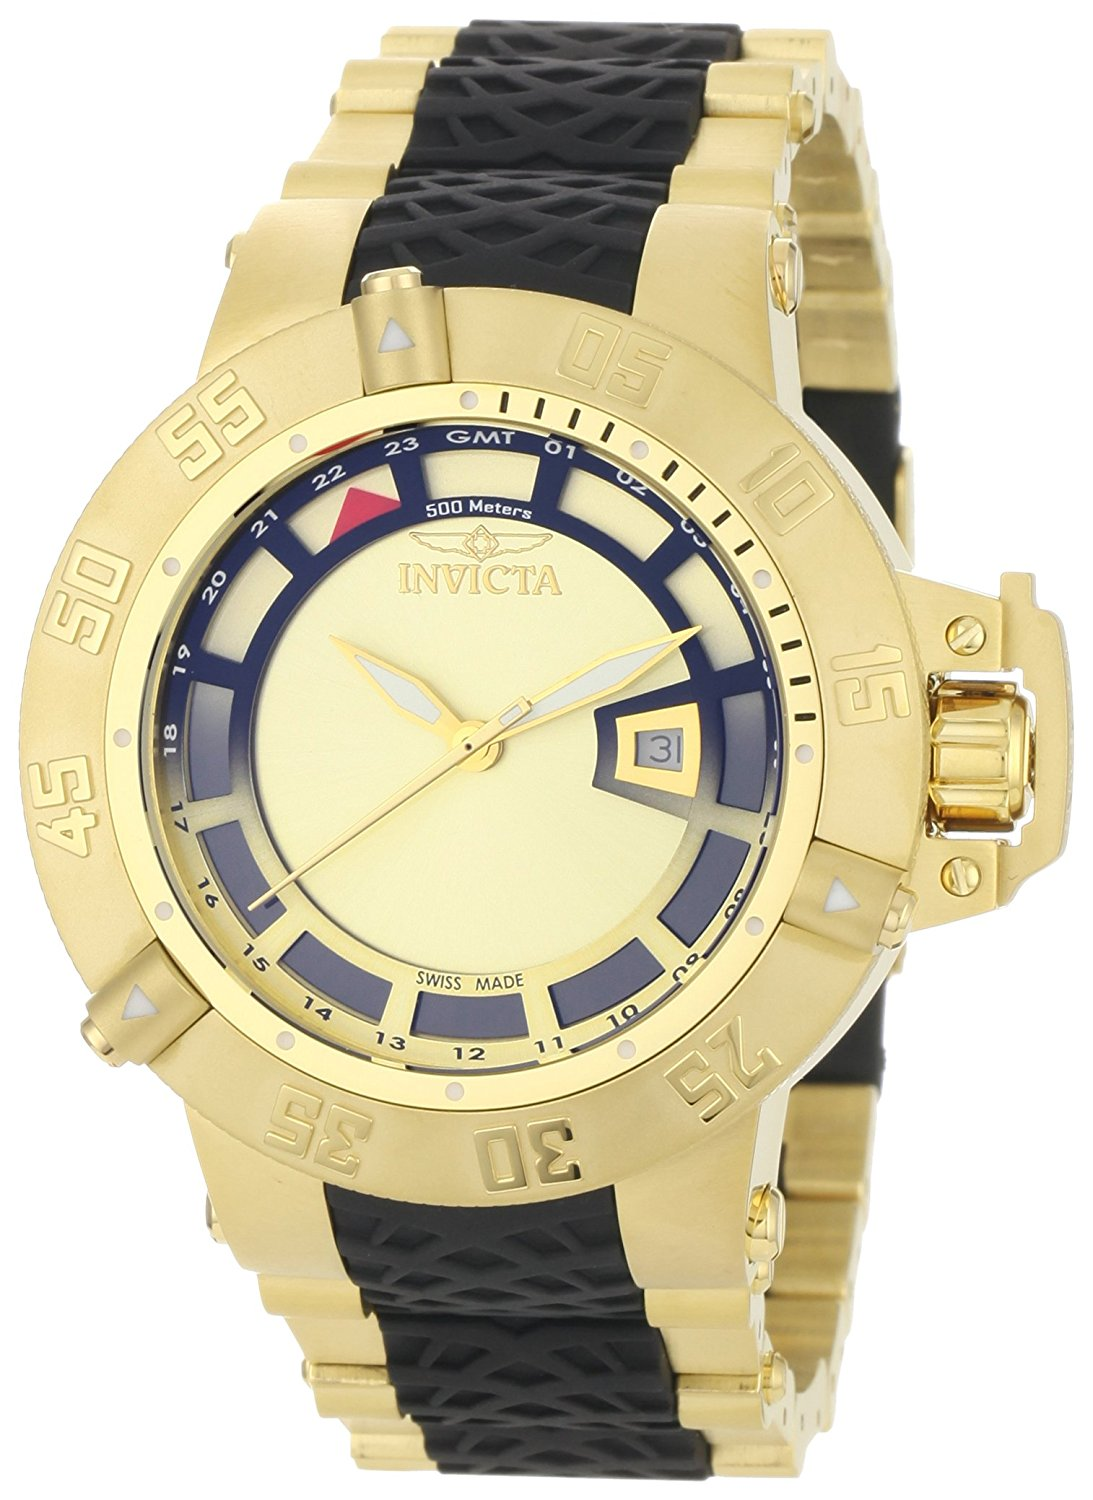 Invicta Men's 6511 Subaqua Noma III Collection 18k Gold-Plated Watch